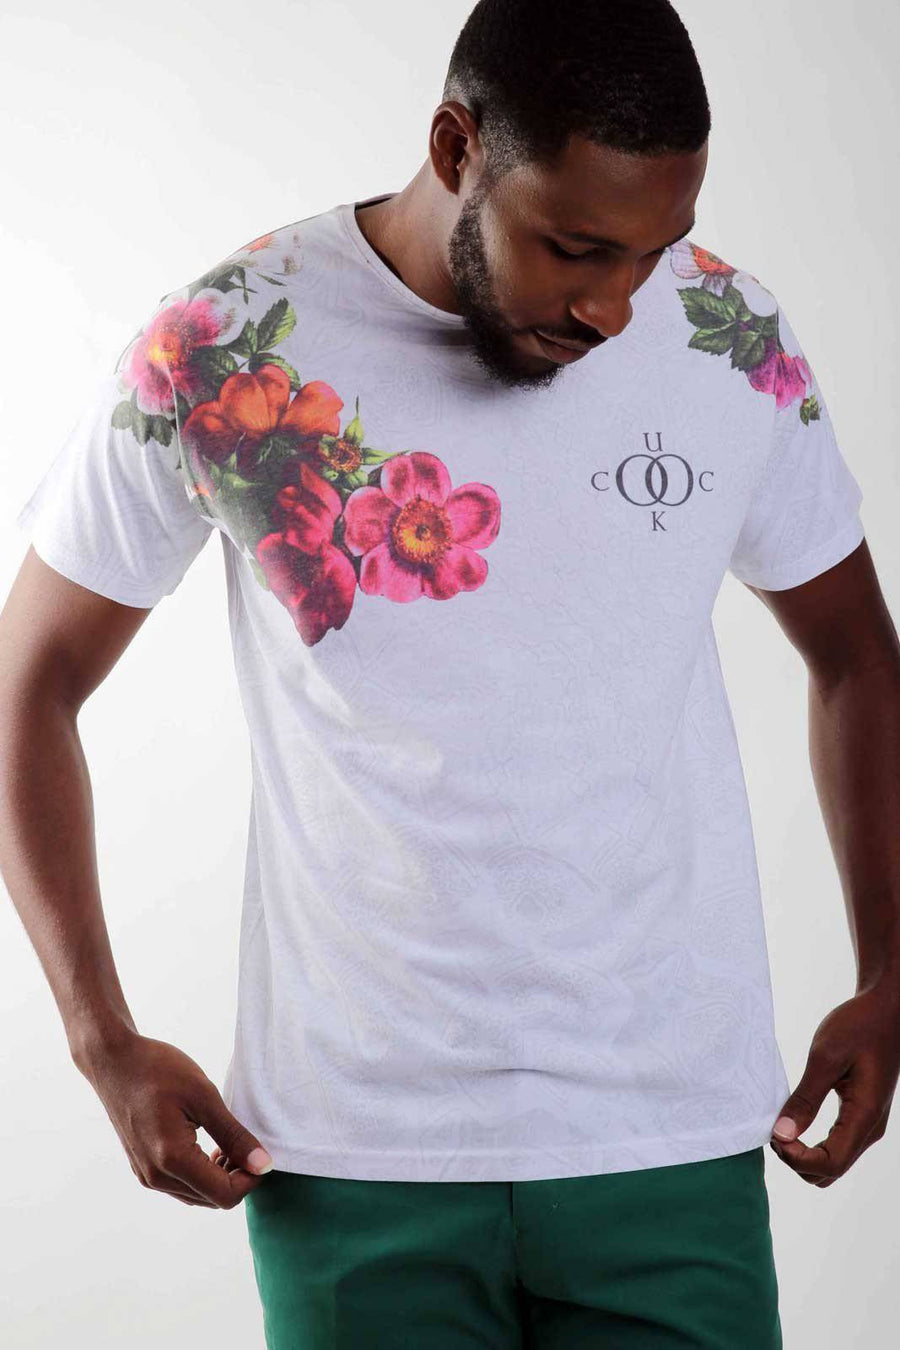 Floral Carnival Tee - South of London